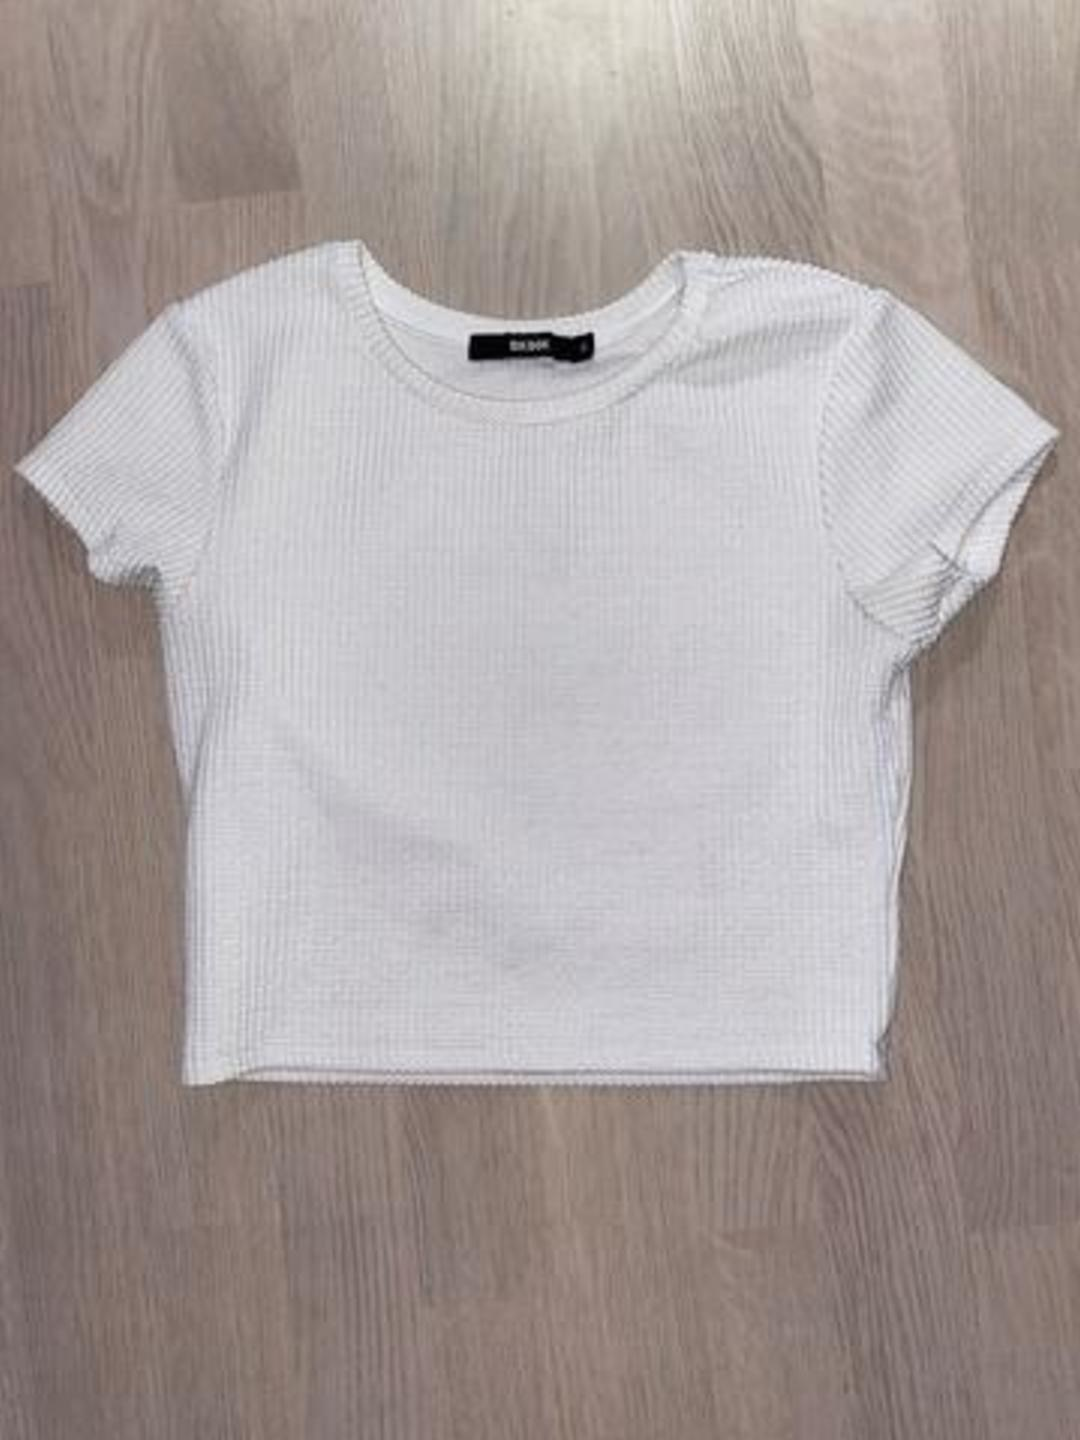 Women's tops & t-shirts - BIK BOK photo 1